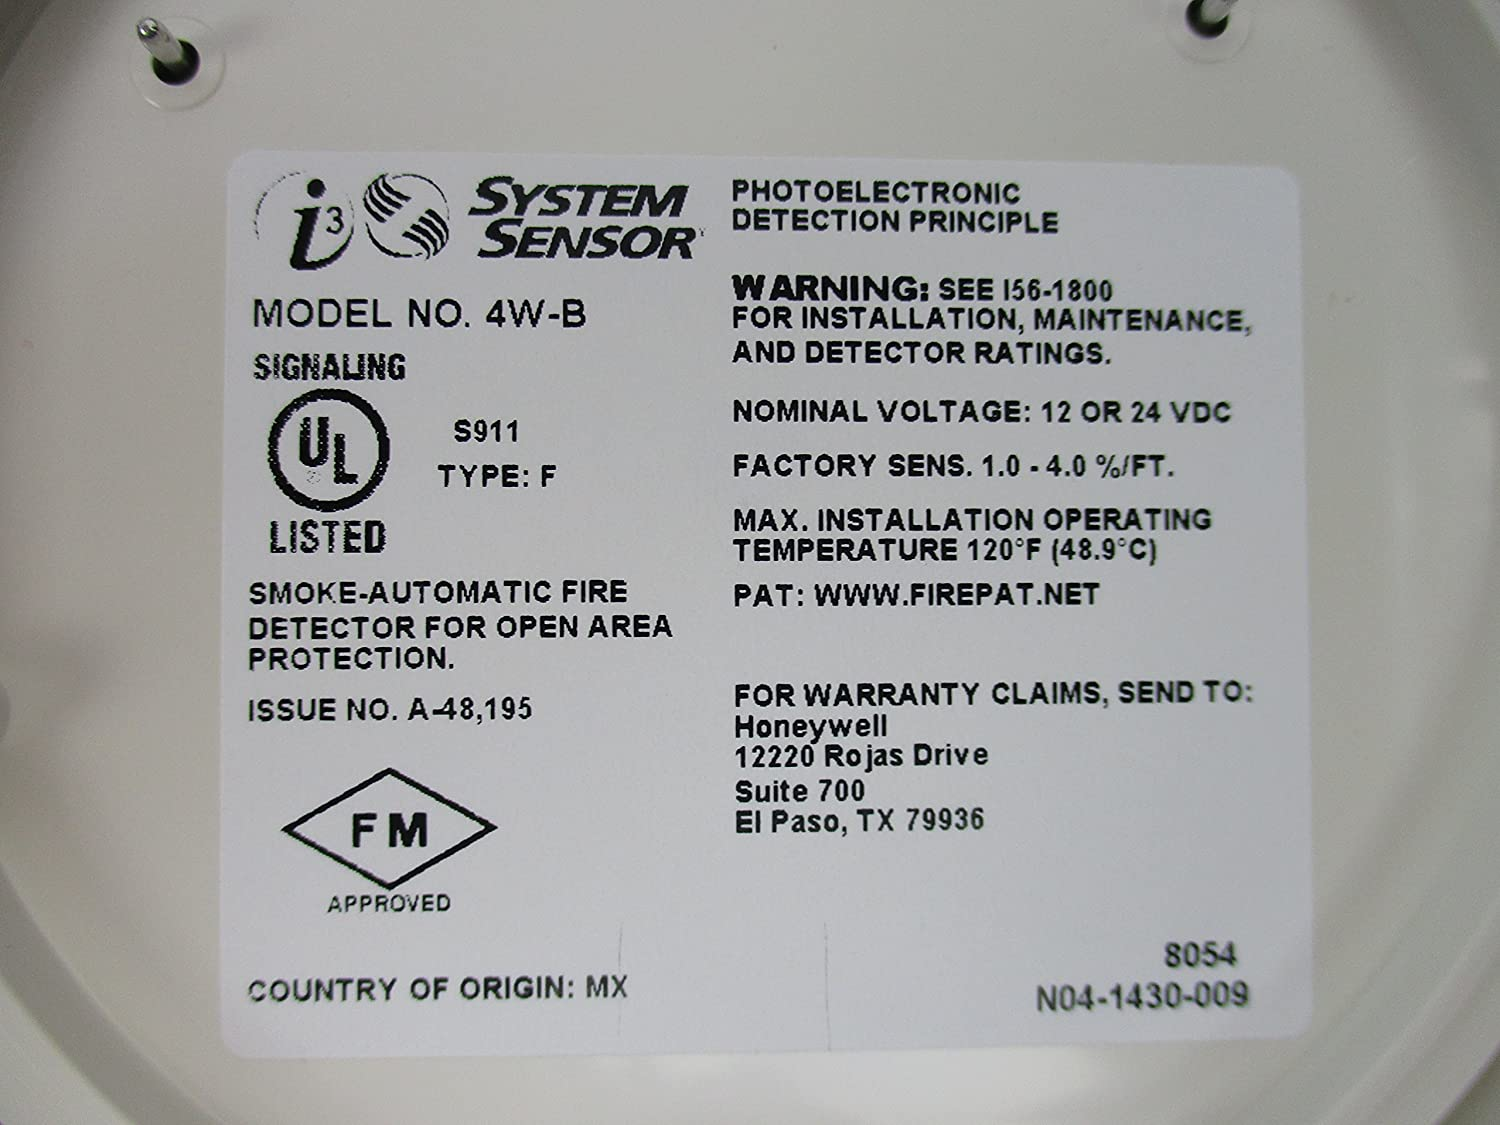 SYSTEM SENSOR Smoke Alarm, 12/24 VDC, 4-Wire, w/Base: Amazon.com: Industrial & Scientific